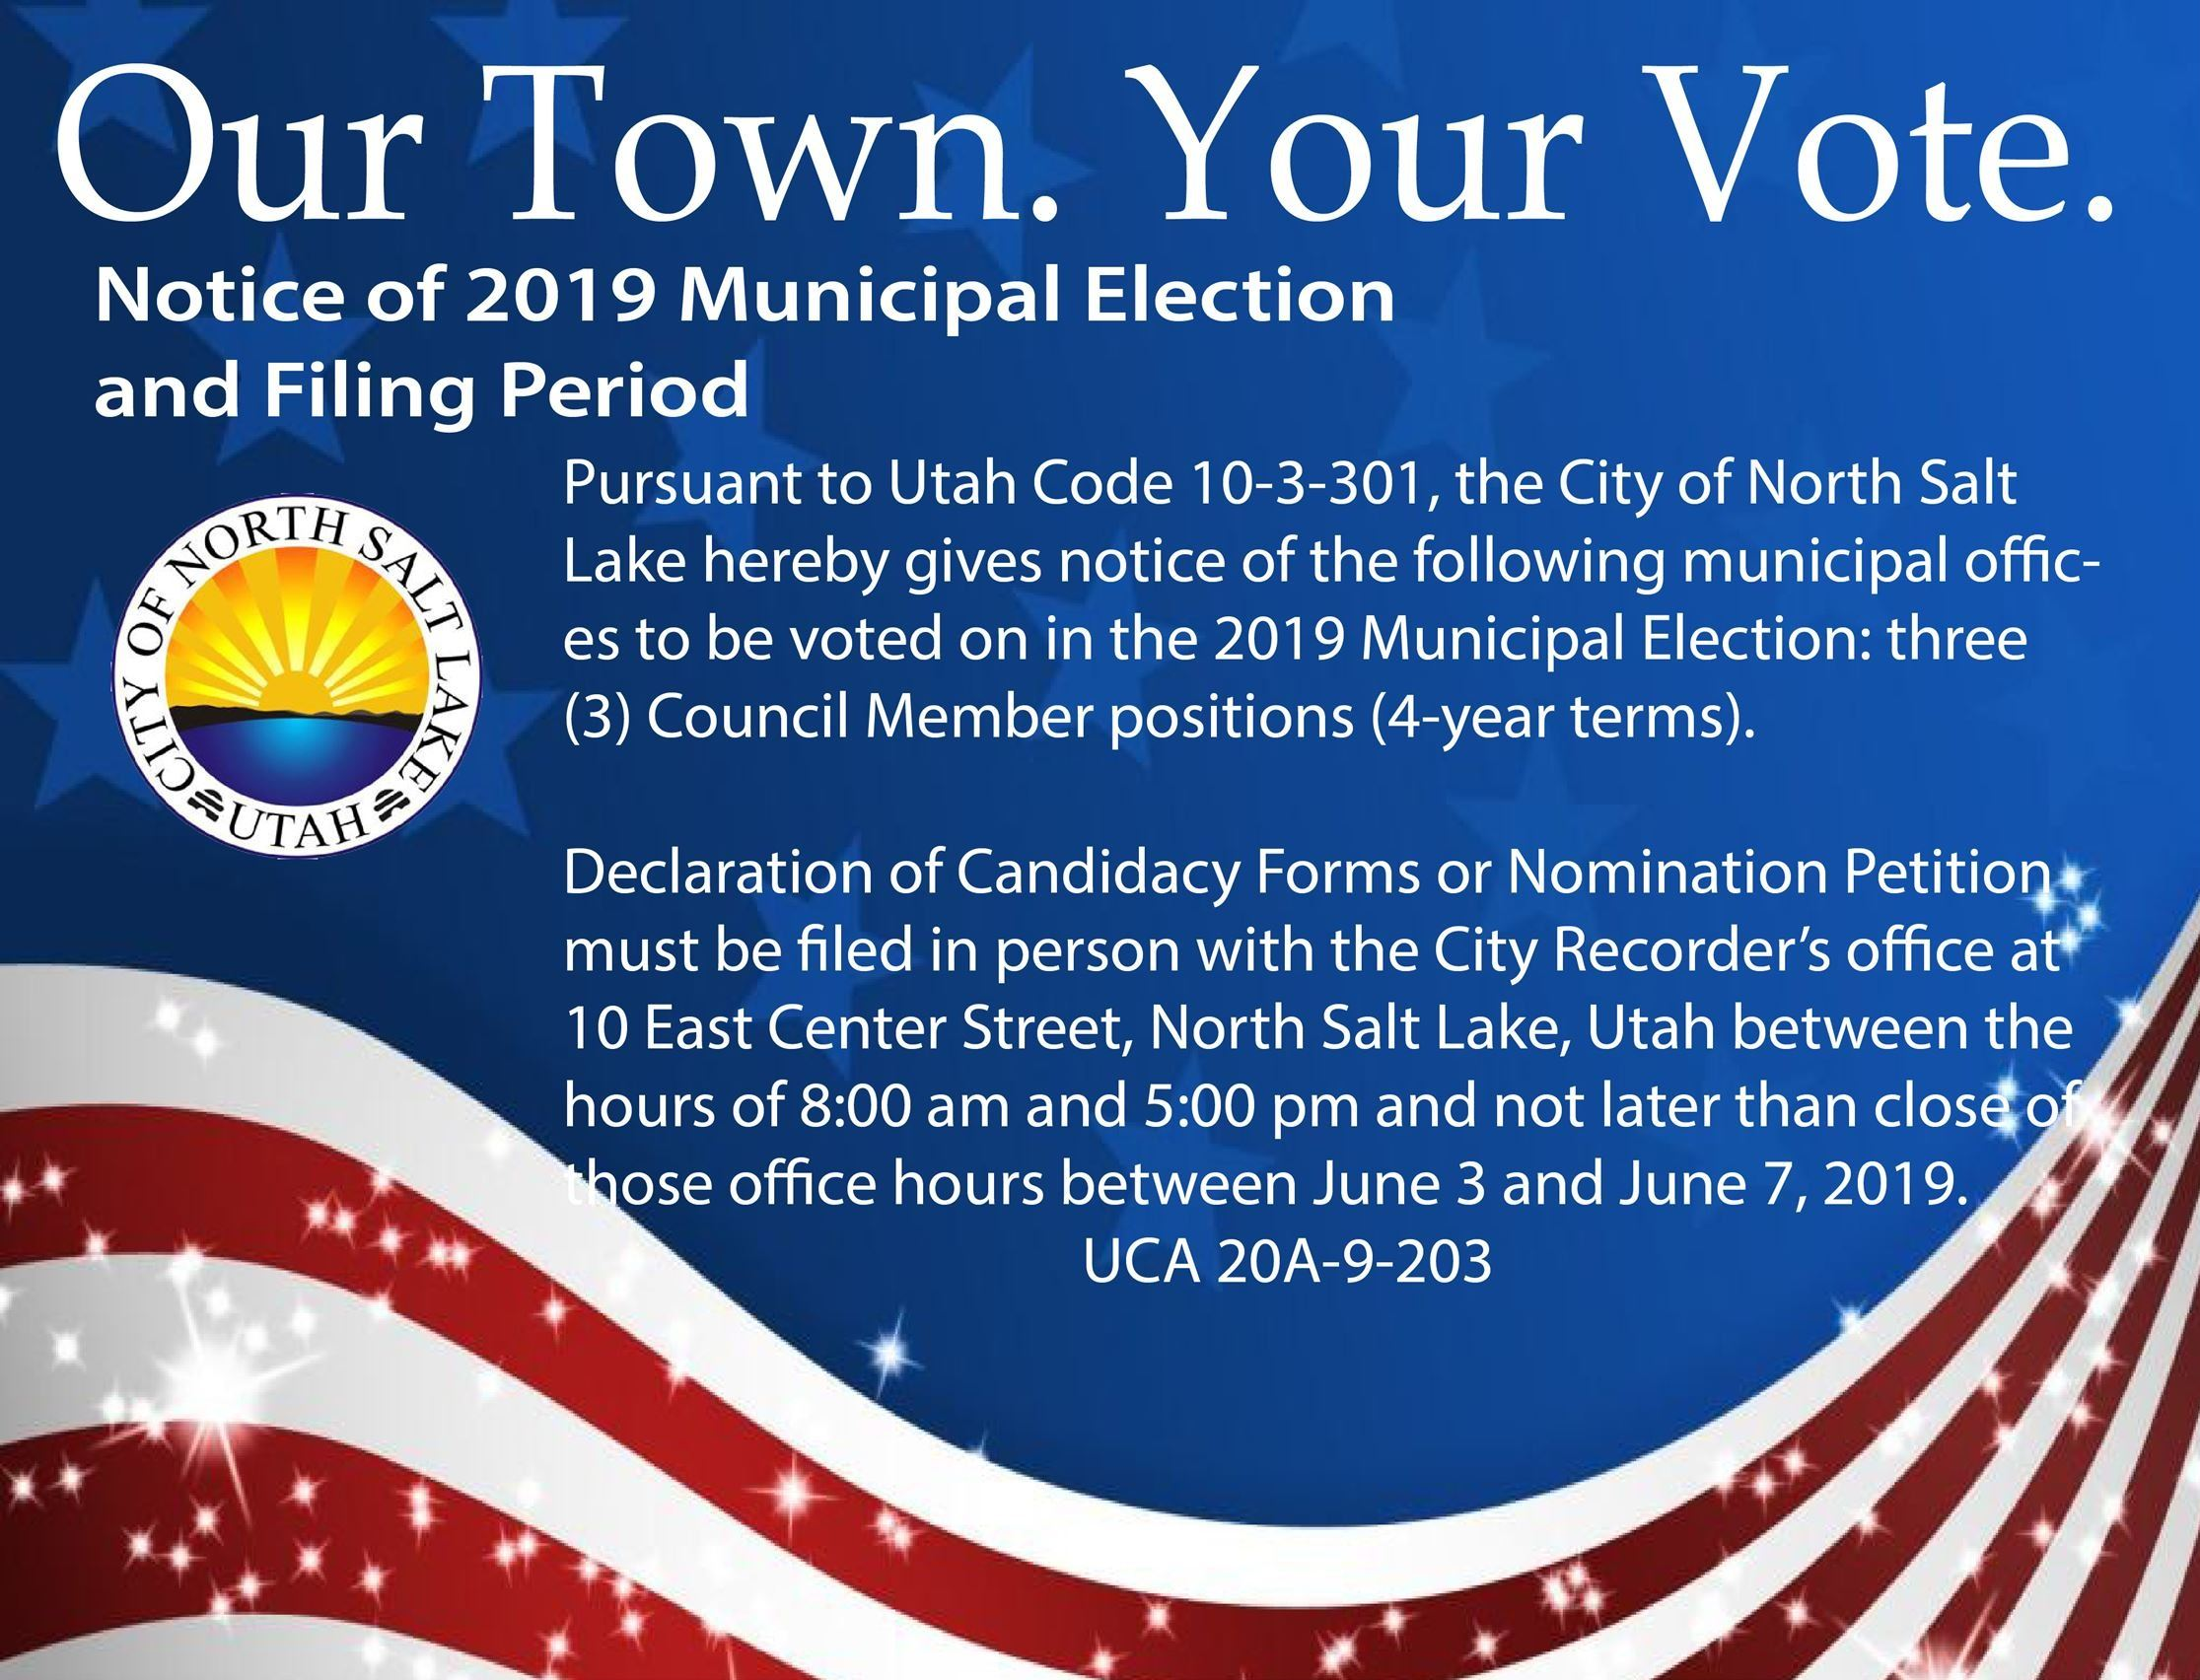 Our Town Your Vote Filing Period 2019 for social media